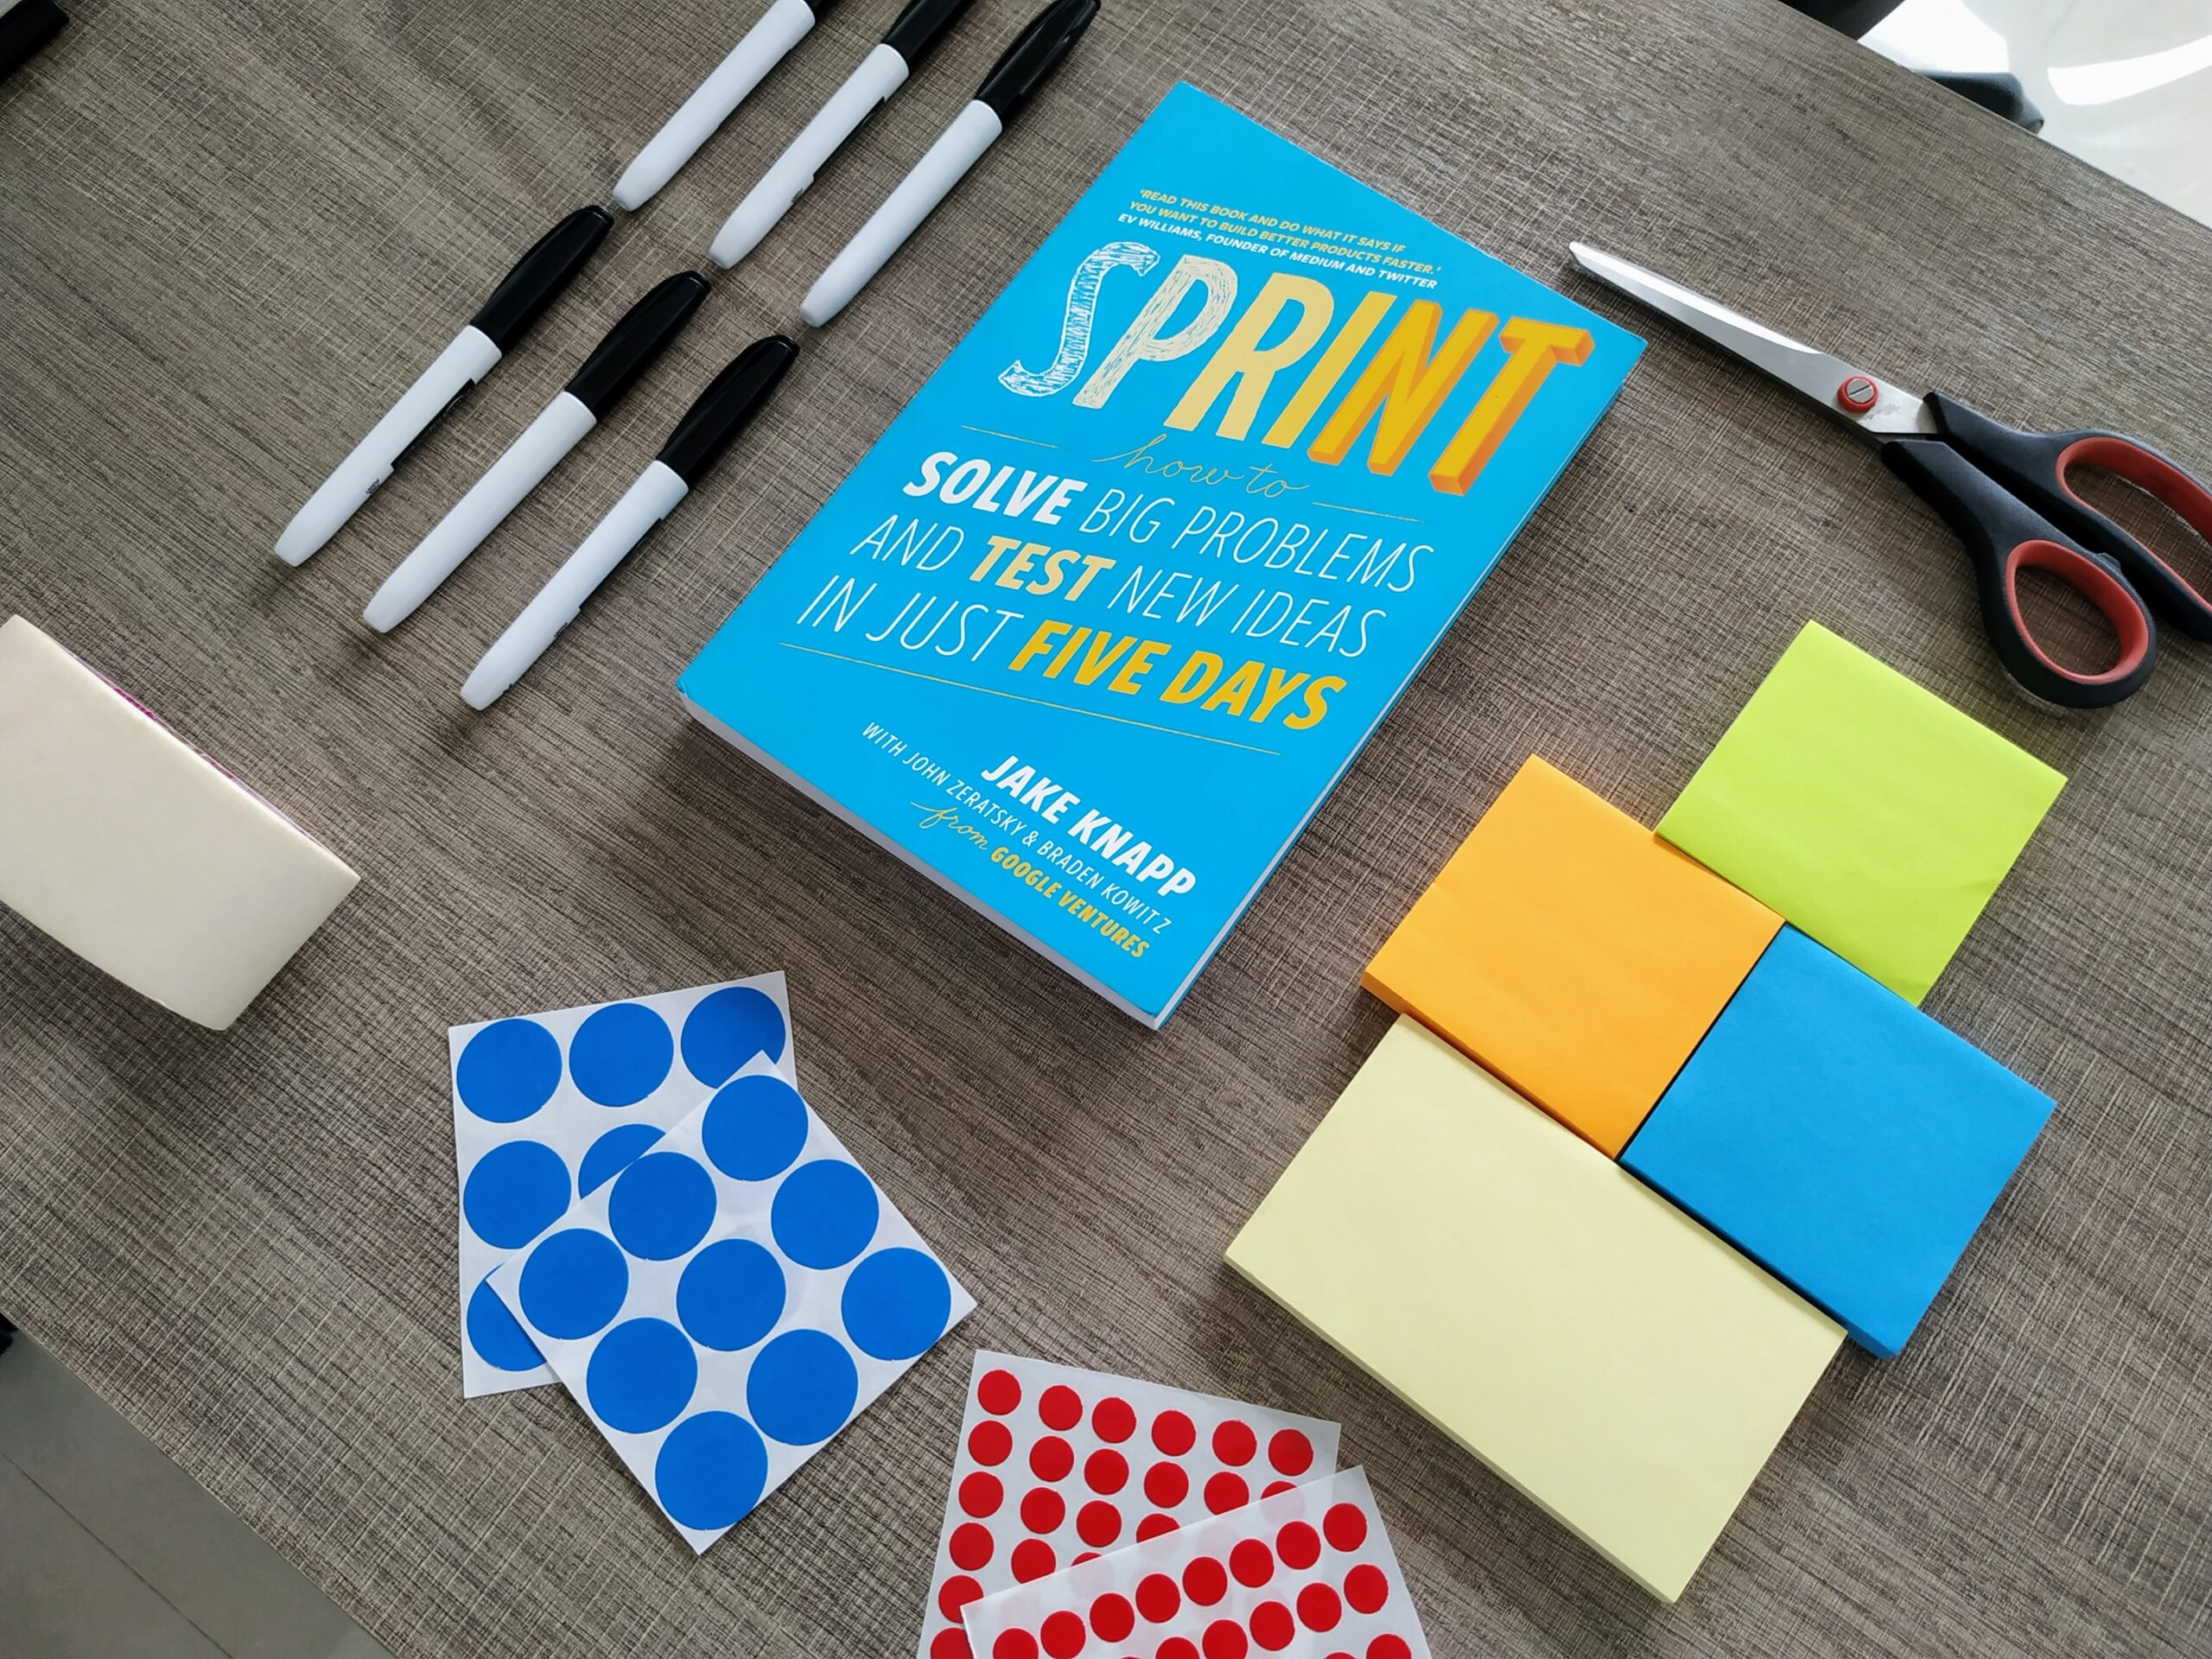 Artikelbild von Remote Design Sprint – Innovation trotz Lockdown